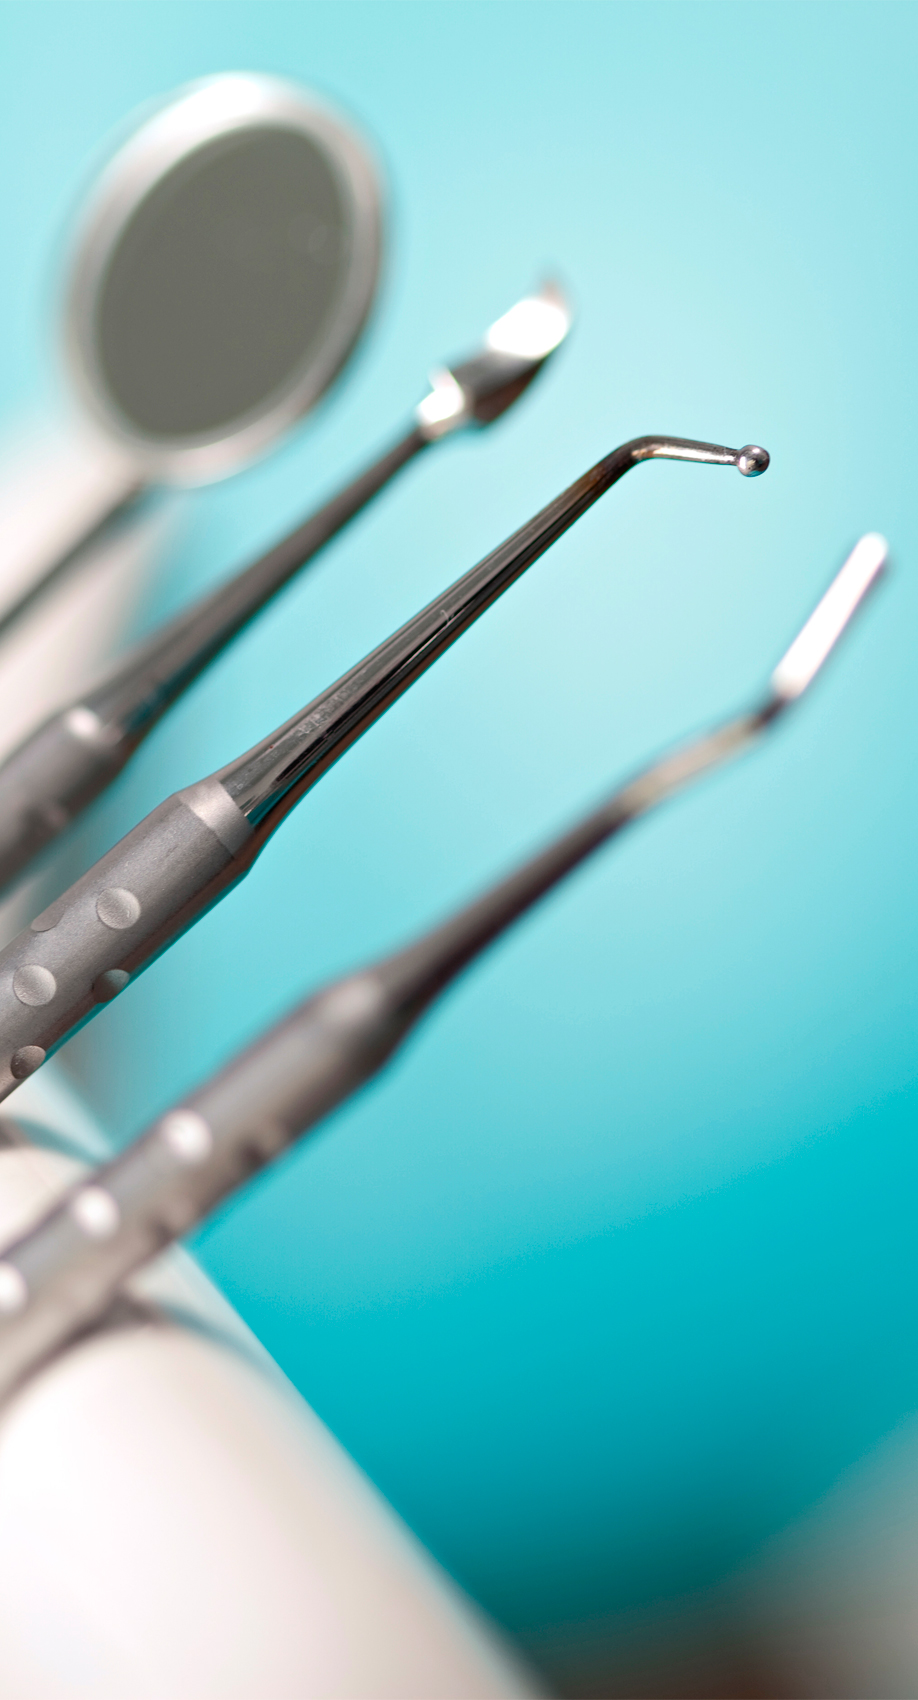 Dentists-instruments-with-shallow-depth-of-field